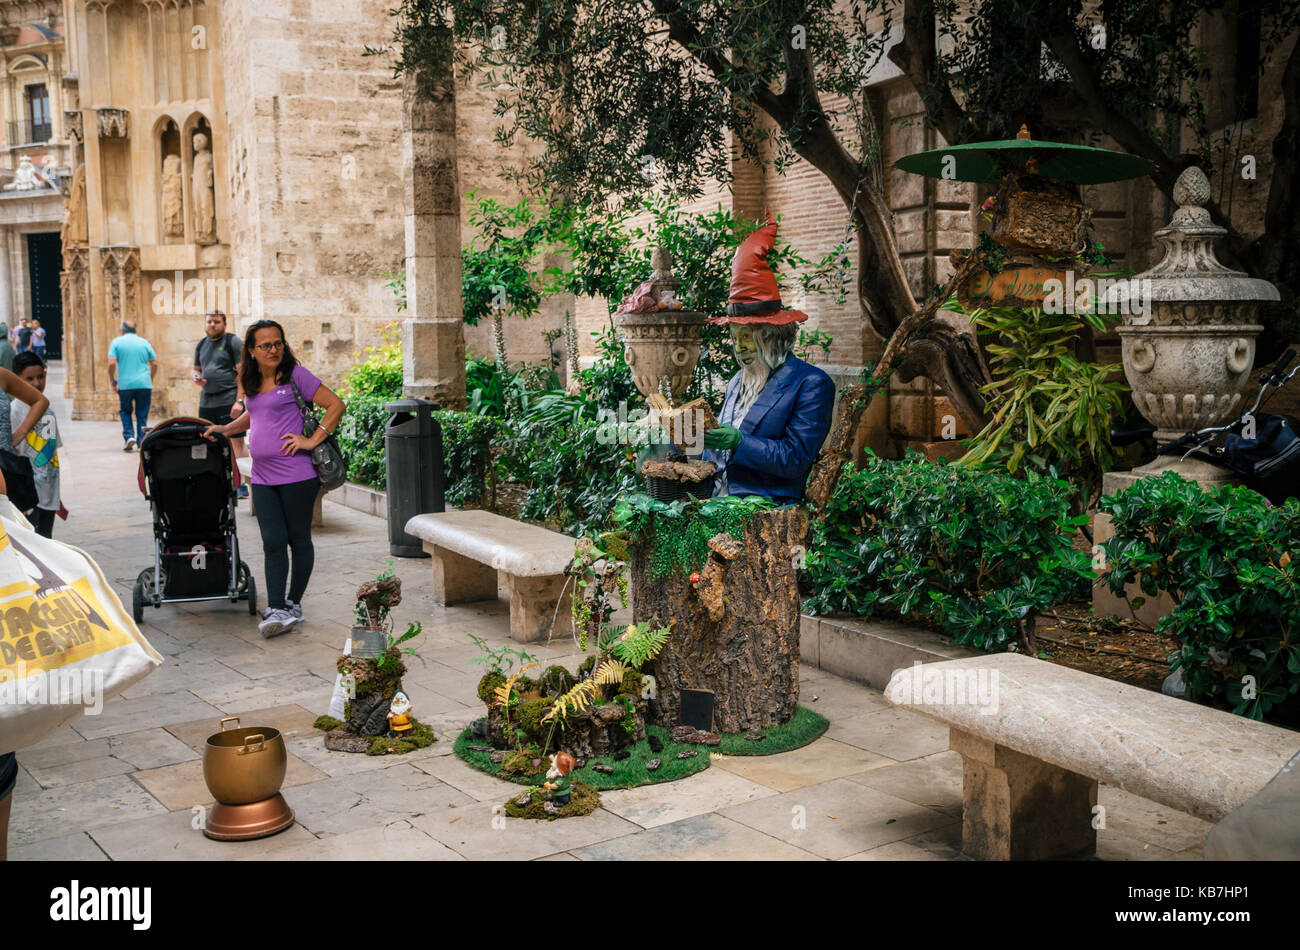 Valencia, Spain - June 3, 2017: Living statue of a man painted in vibrant colors and seated on stump with fountain - Stock Image